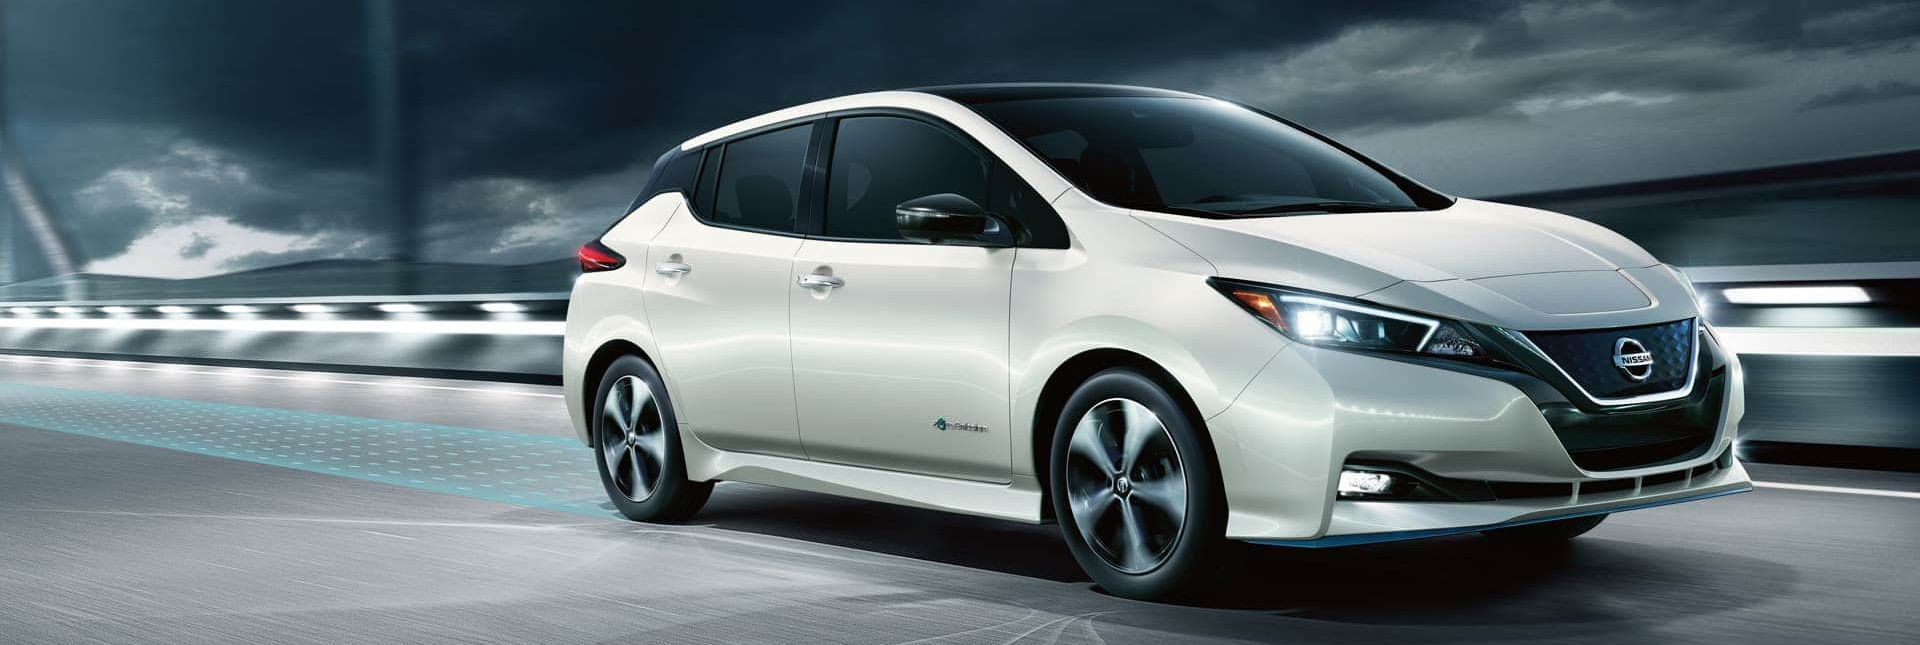 2019 Nissan LEAF Plus in Stock Now at Marlboro Nissan